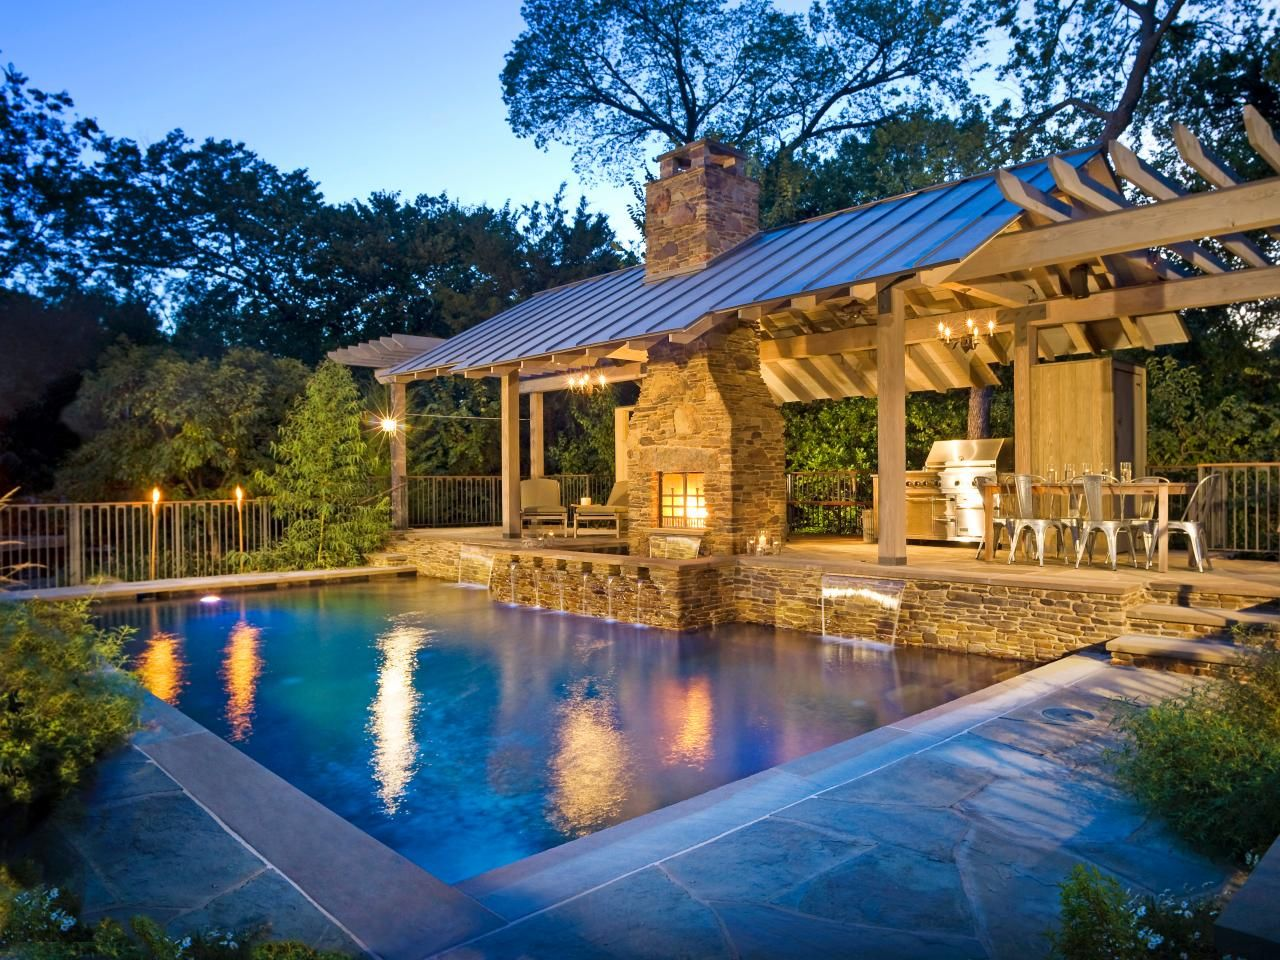 backyard designs with pool and outdoor kitchen. swimming pool with outdoor kitchen plans  backyard landscaping ideas design pools Swimming project Pinterest Outdoor